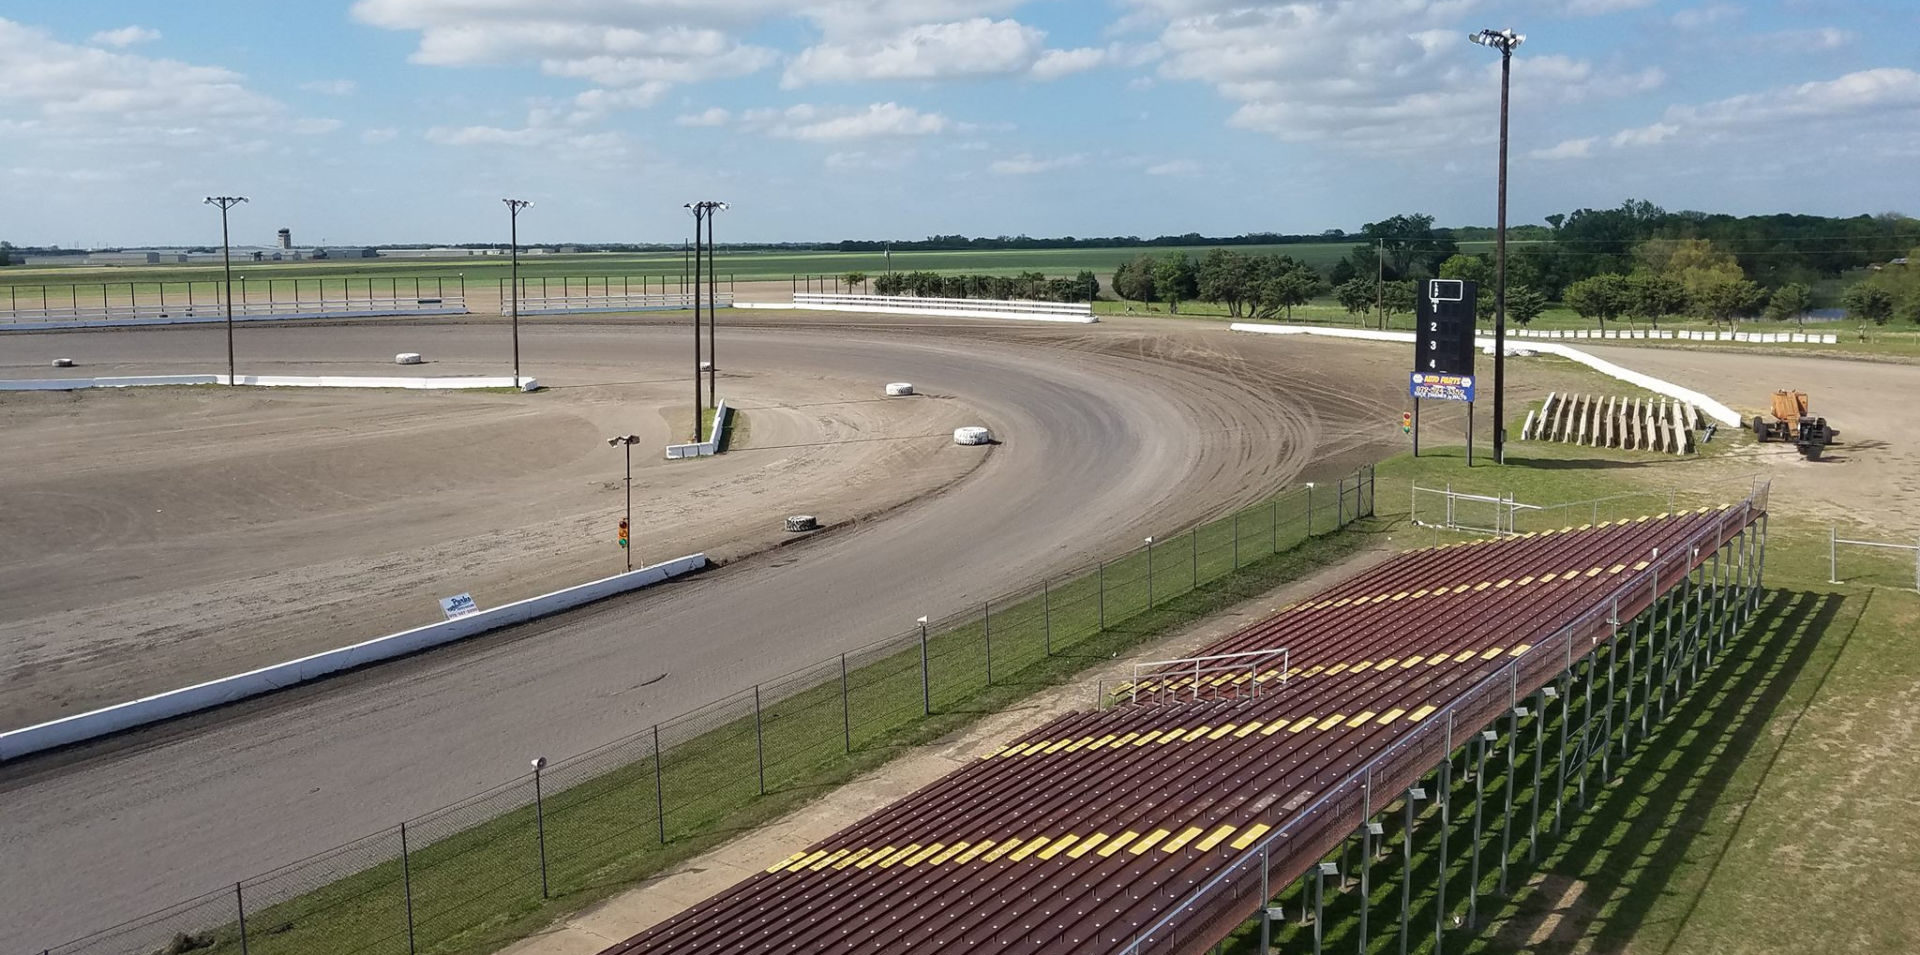 Devil's Bowl Speedway in Mesquite, Texas. Photo courtesy Devil's Bowl Speedway.